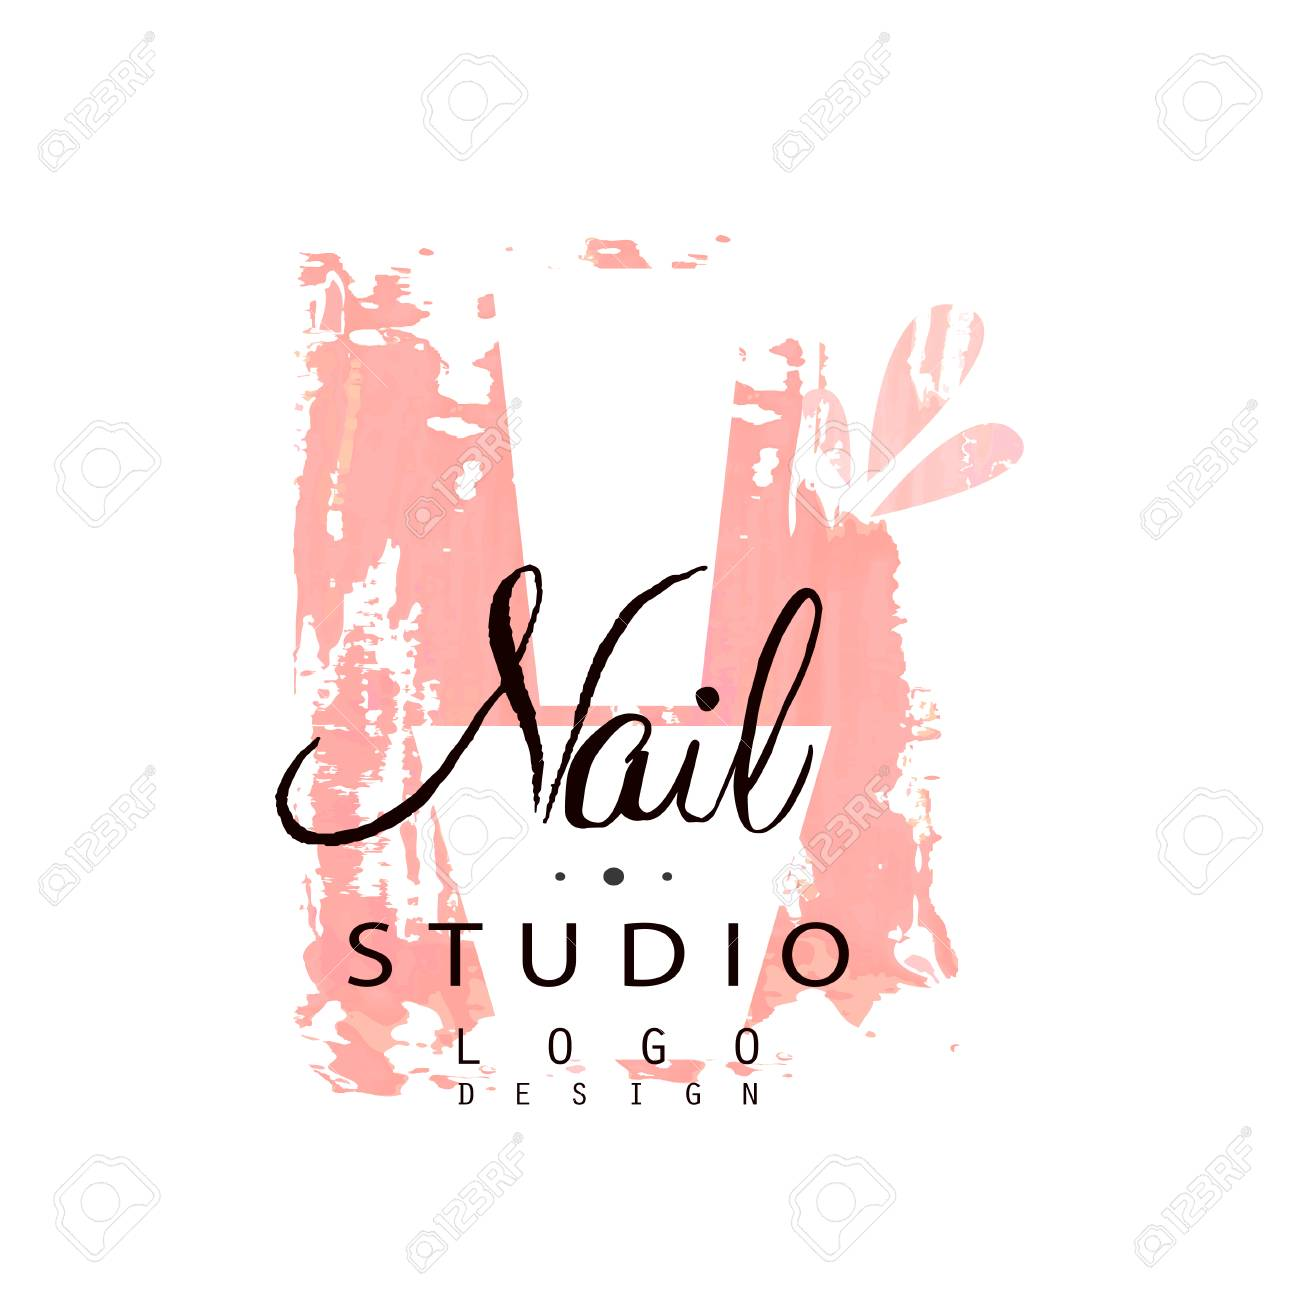 Nail Studio Design Template For Nail Bar Manicure Saloon